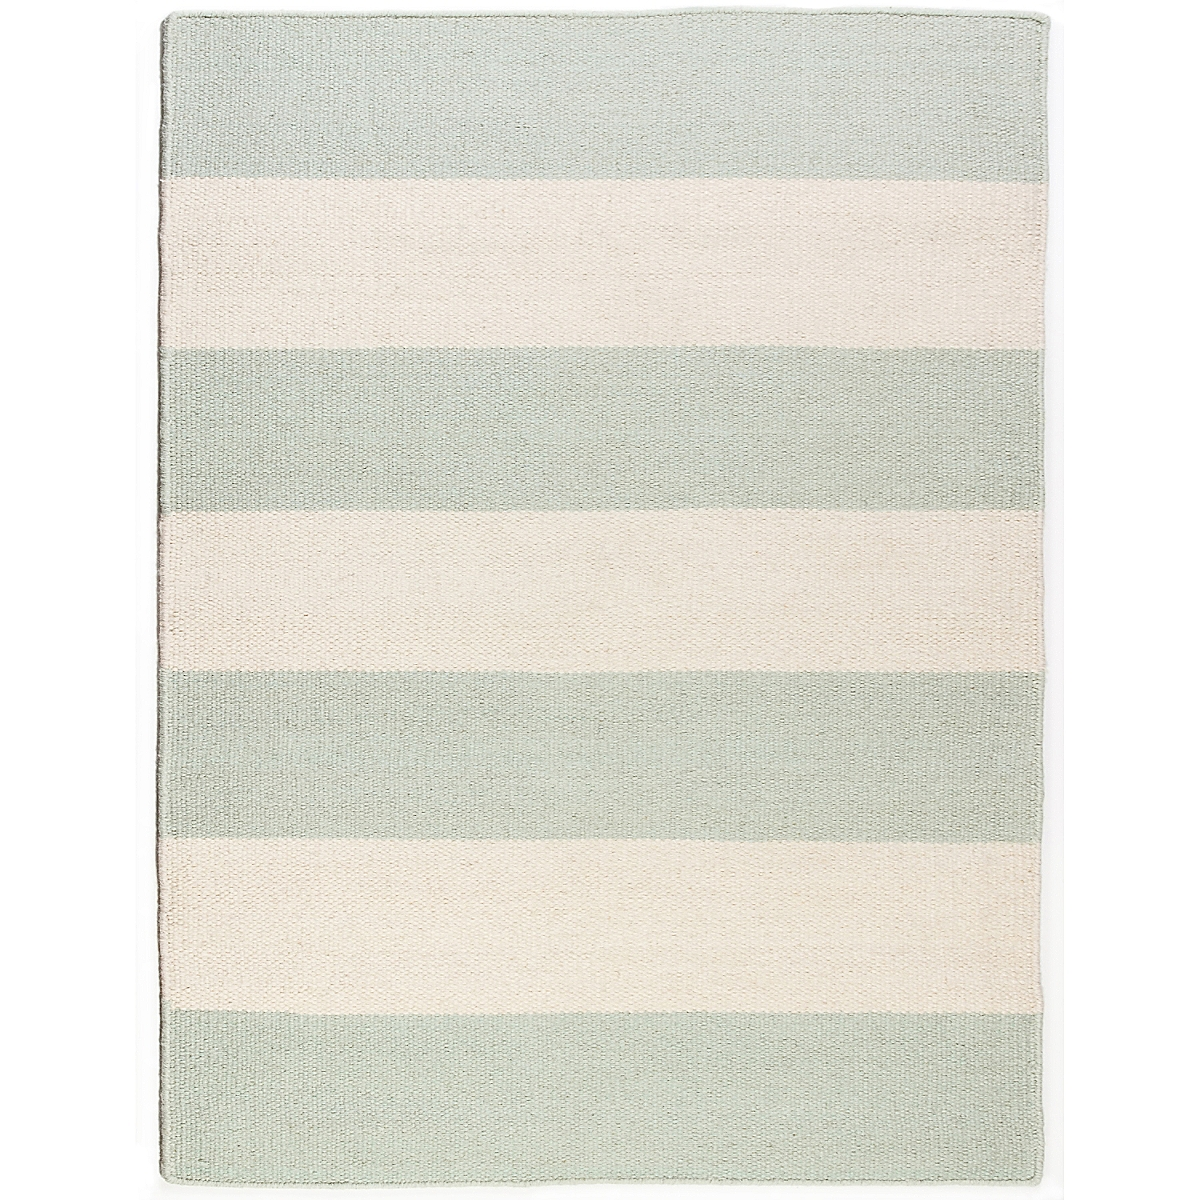 Roe Island Wool Berber Striped Rug